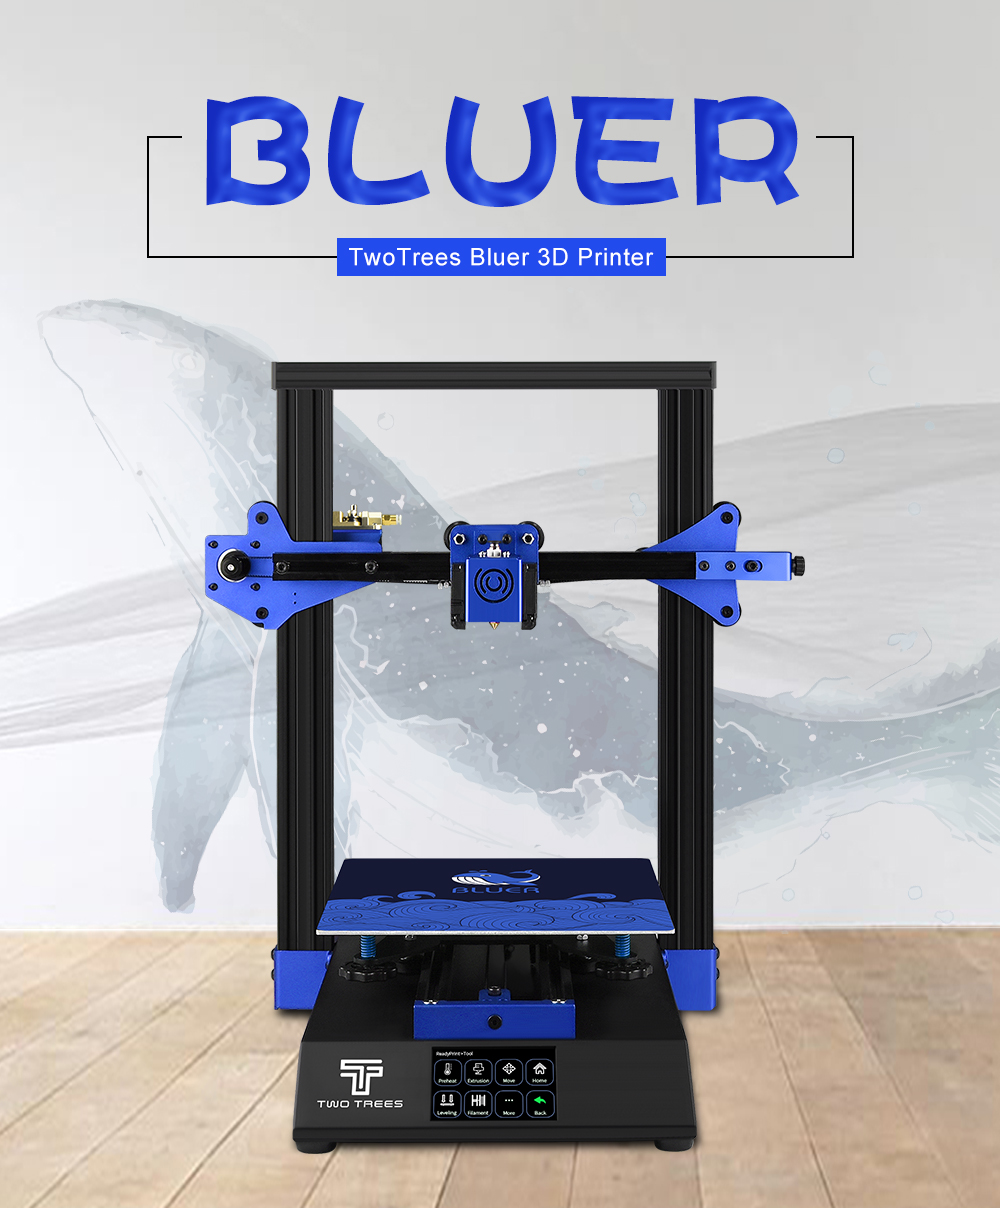 Two Trees Bluer FDM 3D Printer Automatic Leveling 3.5 inch Touch Screen TMC2208 Mute Drive / MKS ROBIN NANO V1.1 Motherboard - Black US Plug (2-pin)